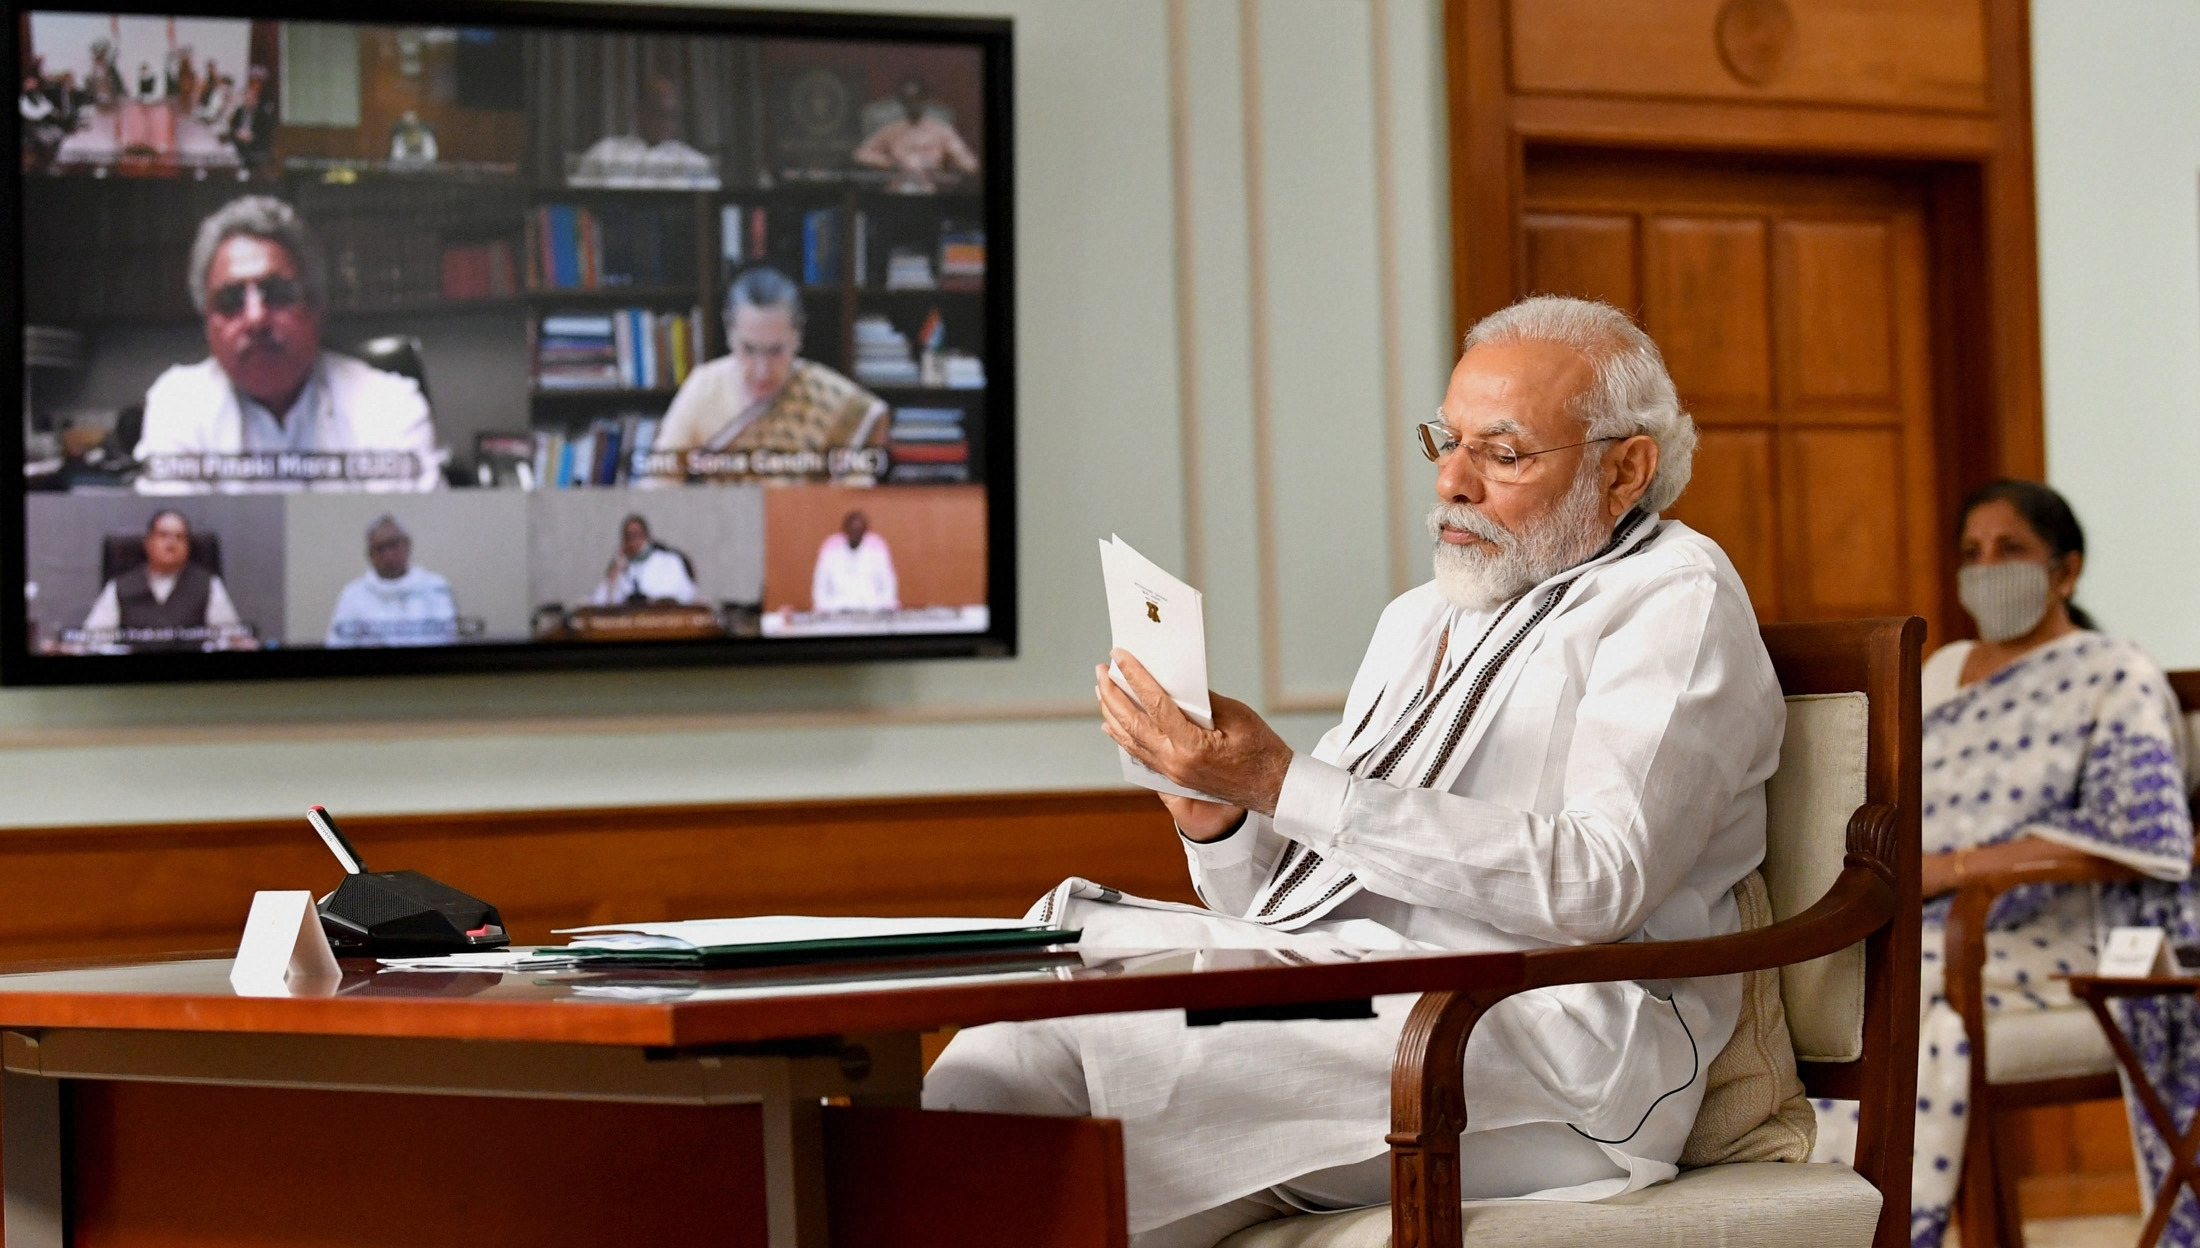 Prime Minister Narendra Modi during an all party meeting to discuss the situation along the India-China border via video conferencing, in New Delhi, Friday, June 19, 2020